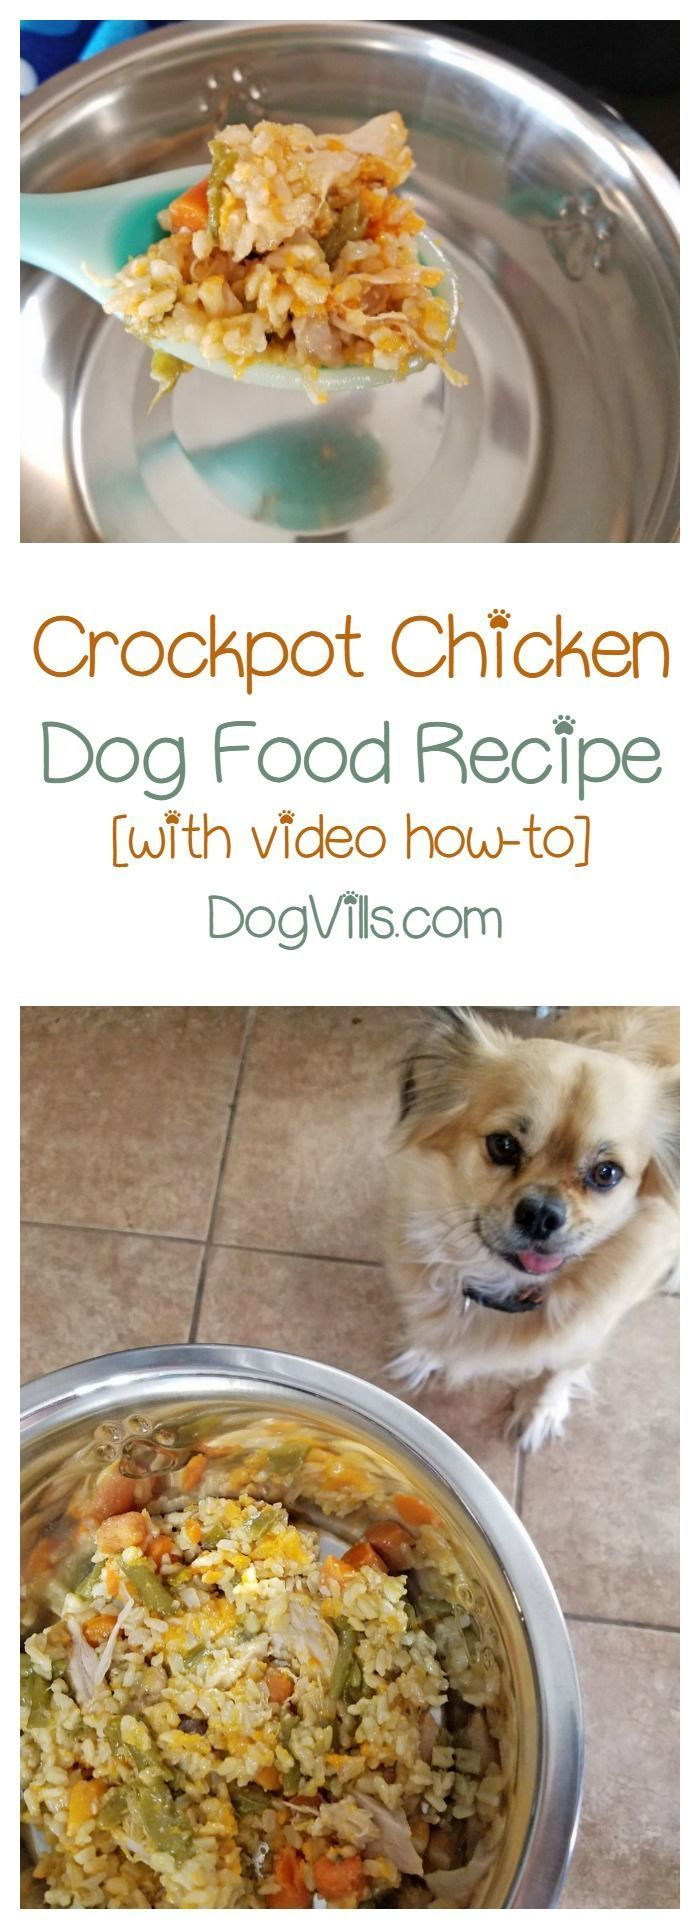 357 best Cooking for Dogs images on Pinterest | Dog food recipes ...